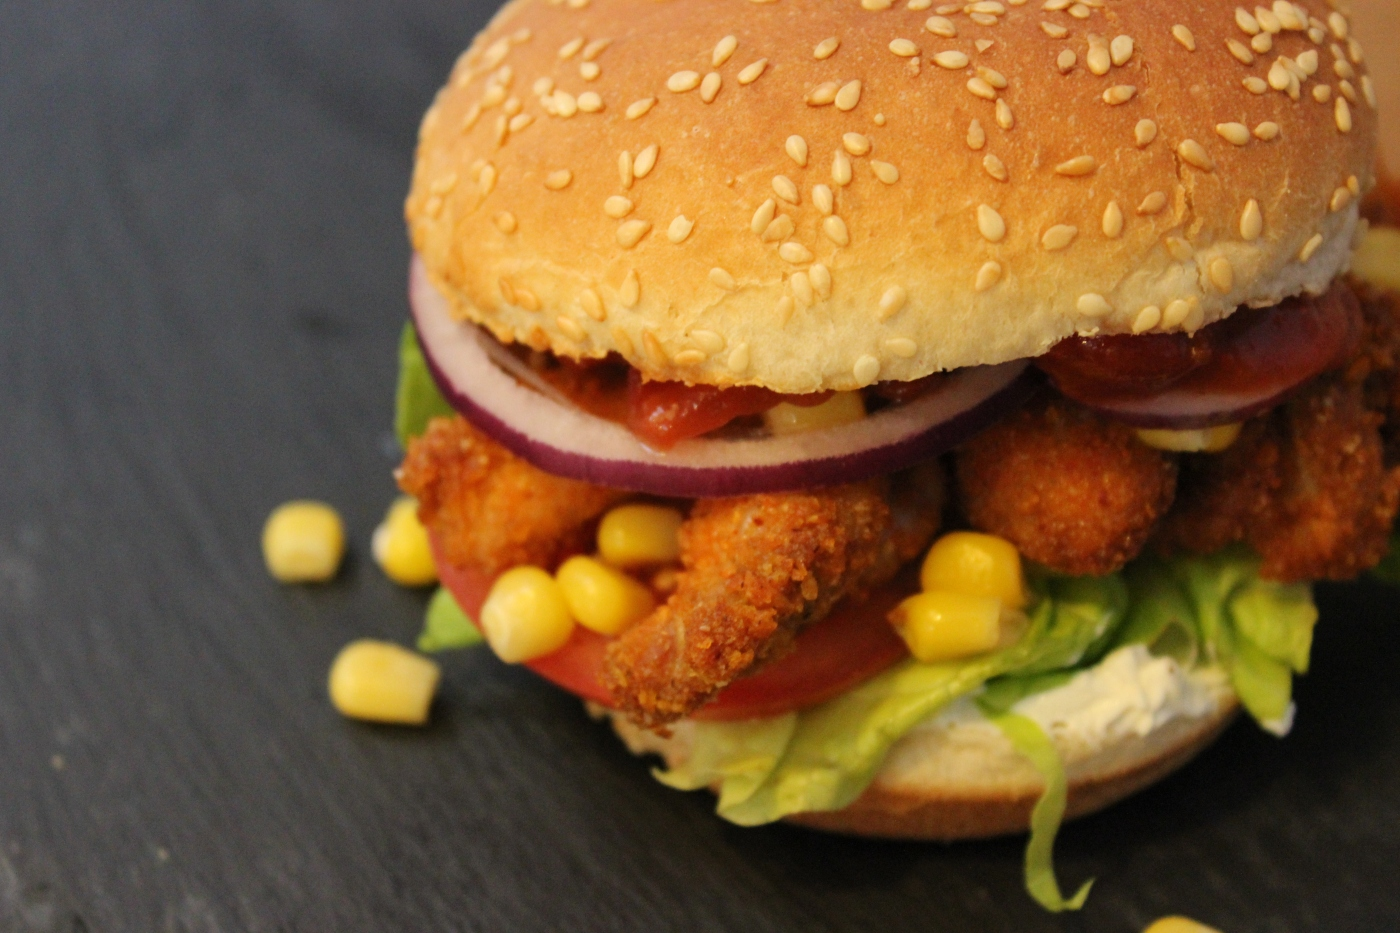 texmex crispy chicken burger